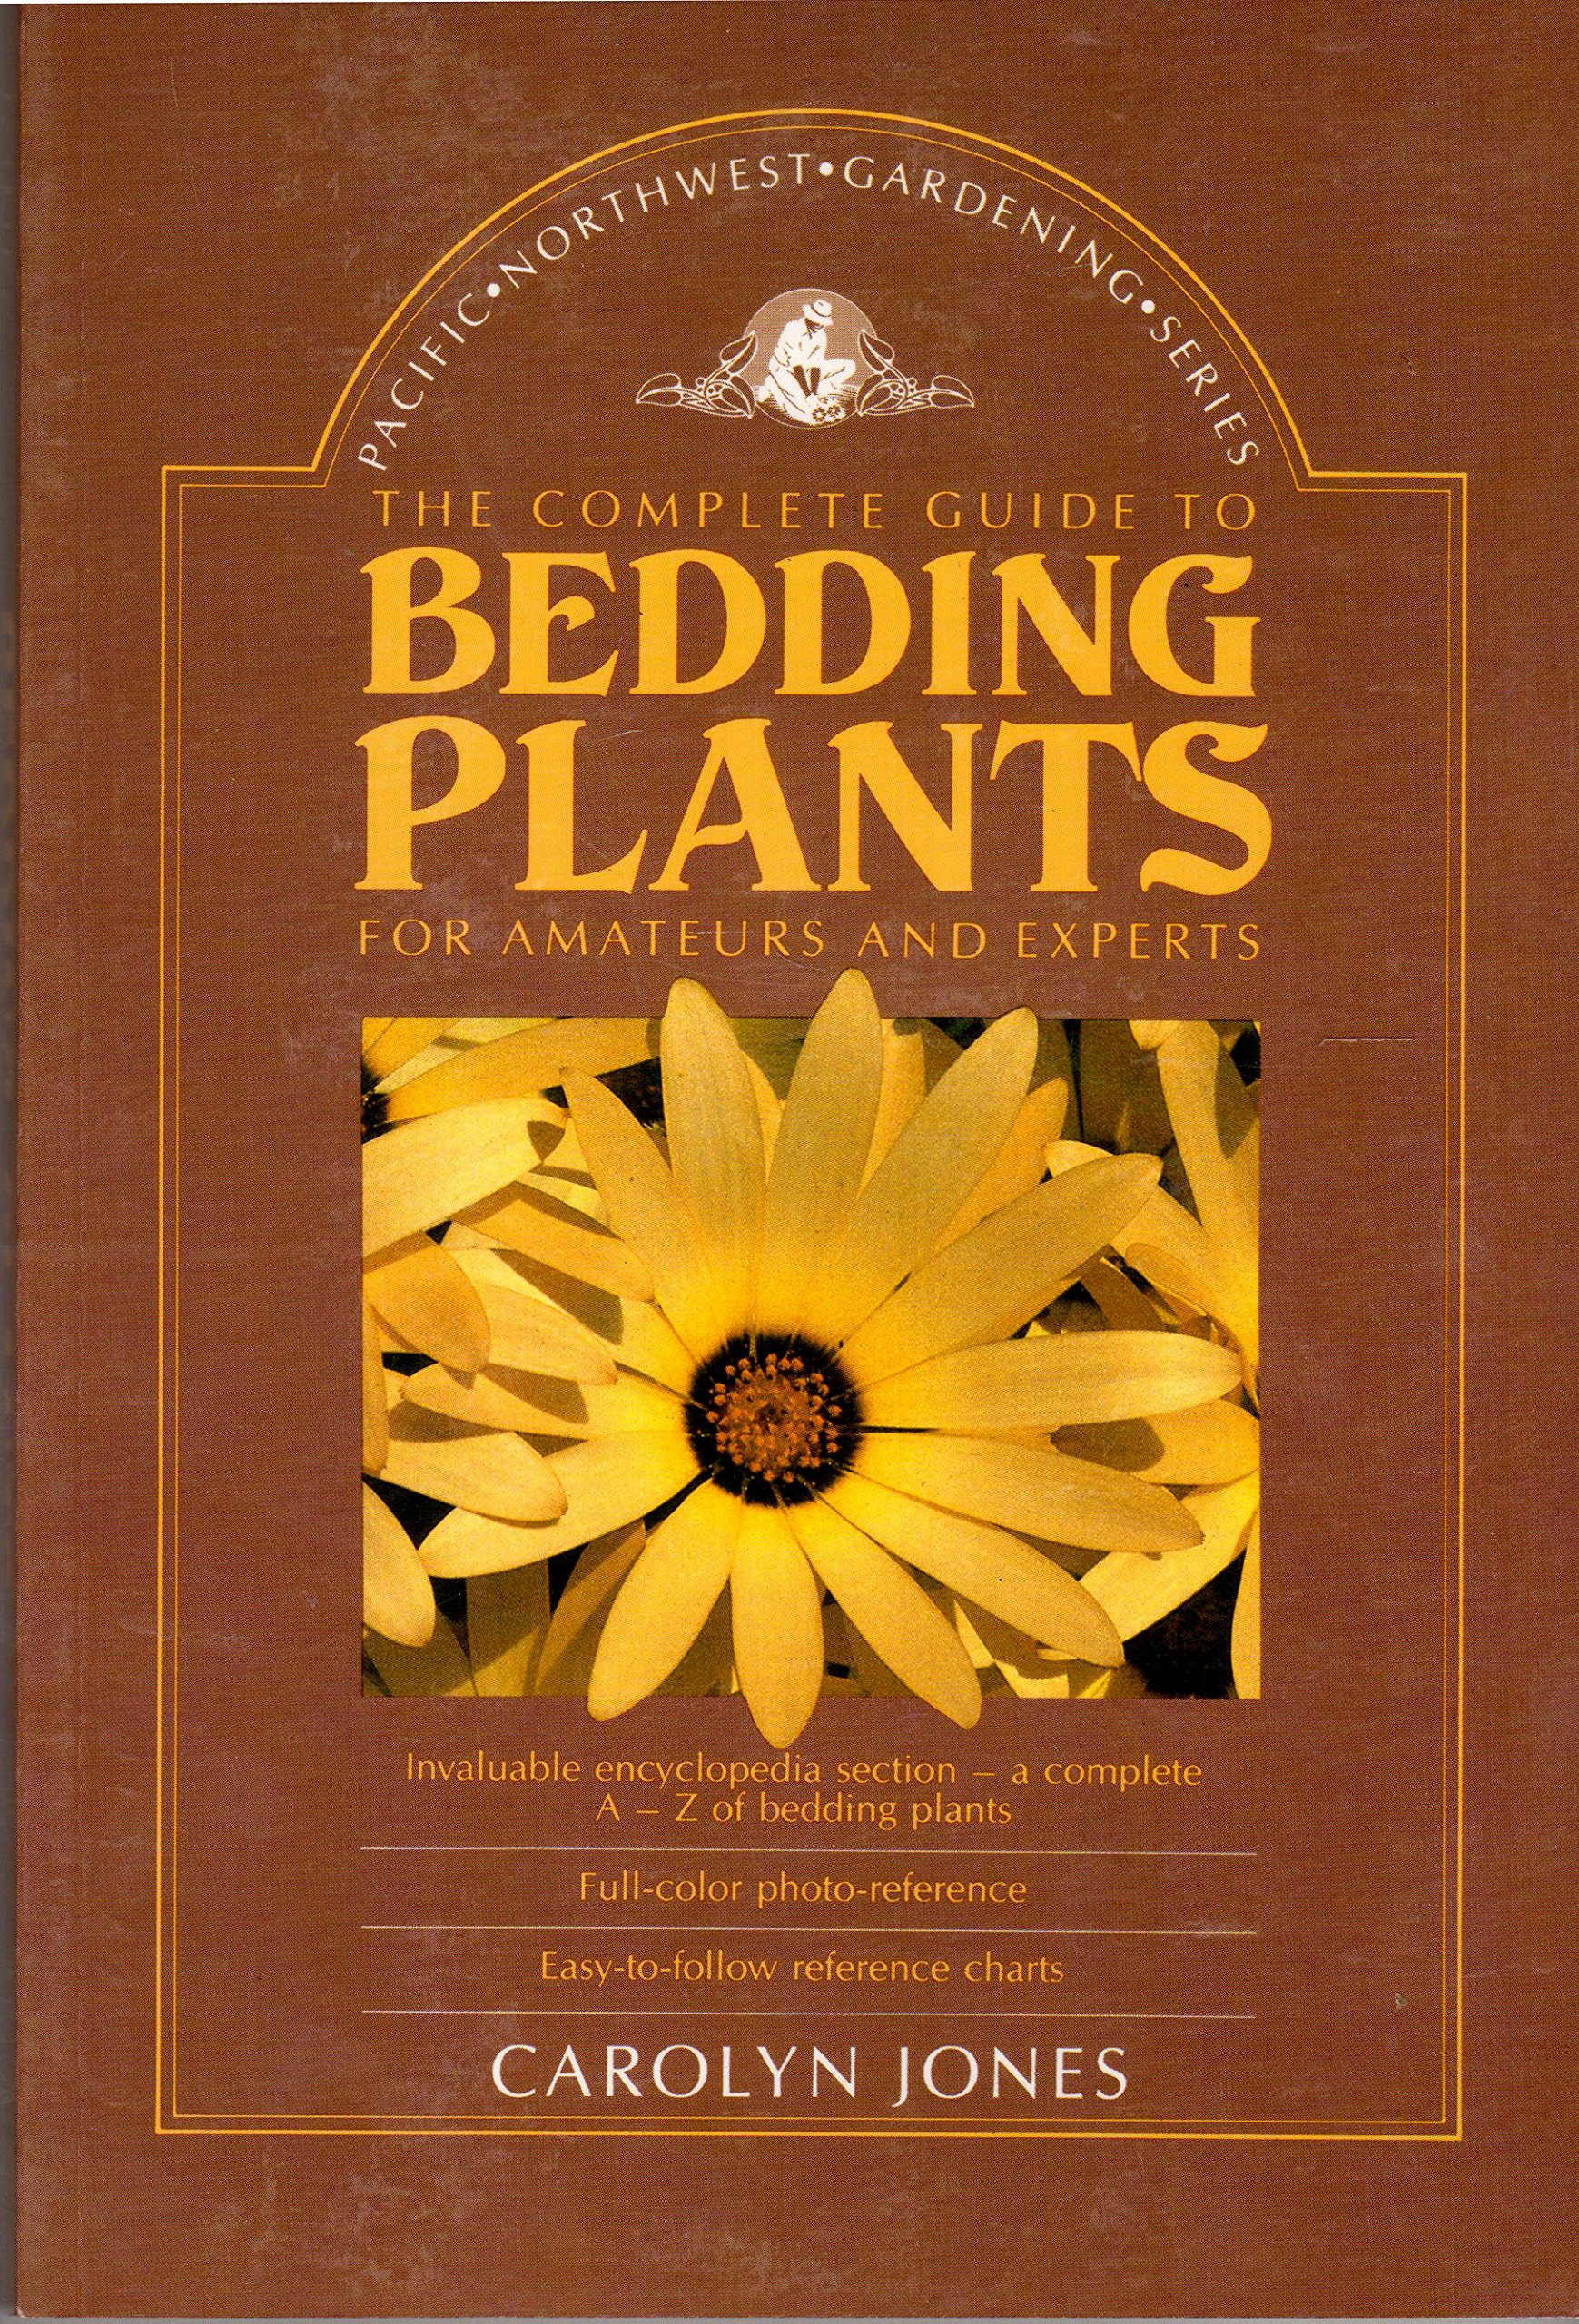 Image for The Complete Guide to Bedding Plants for Amateurs and Experts (Pacific Northwest Gardening)